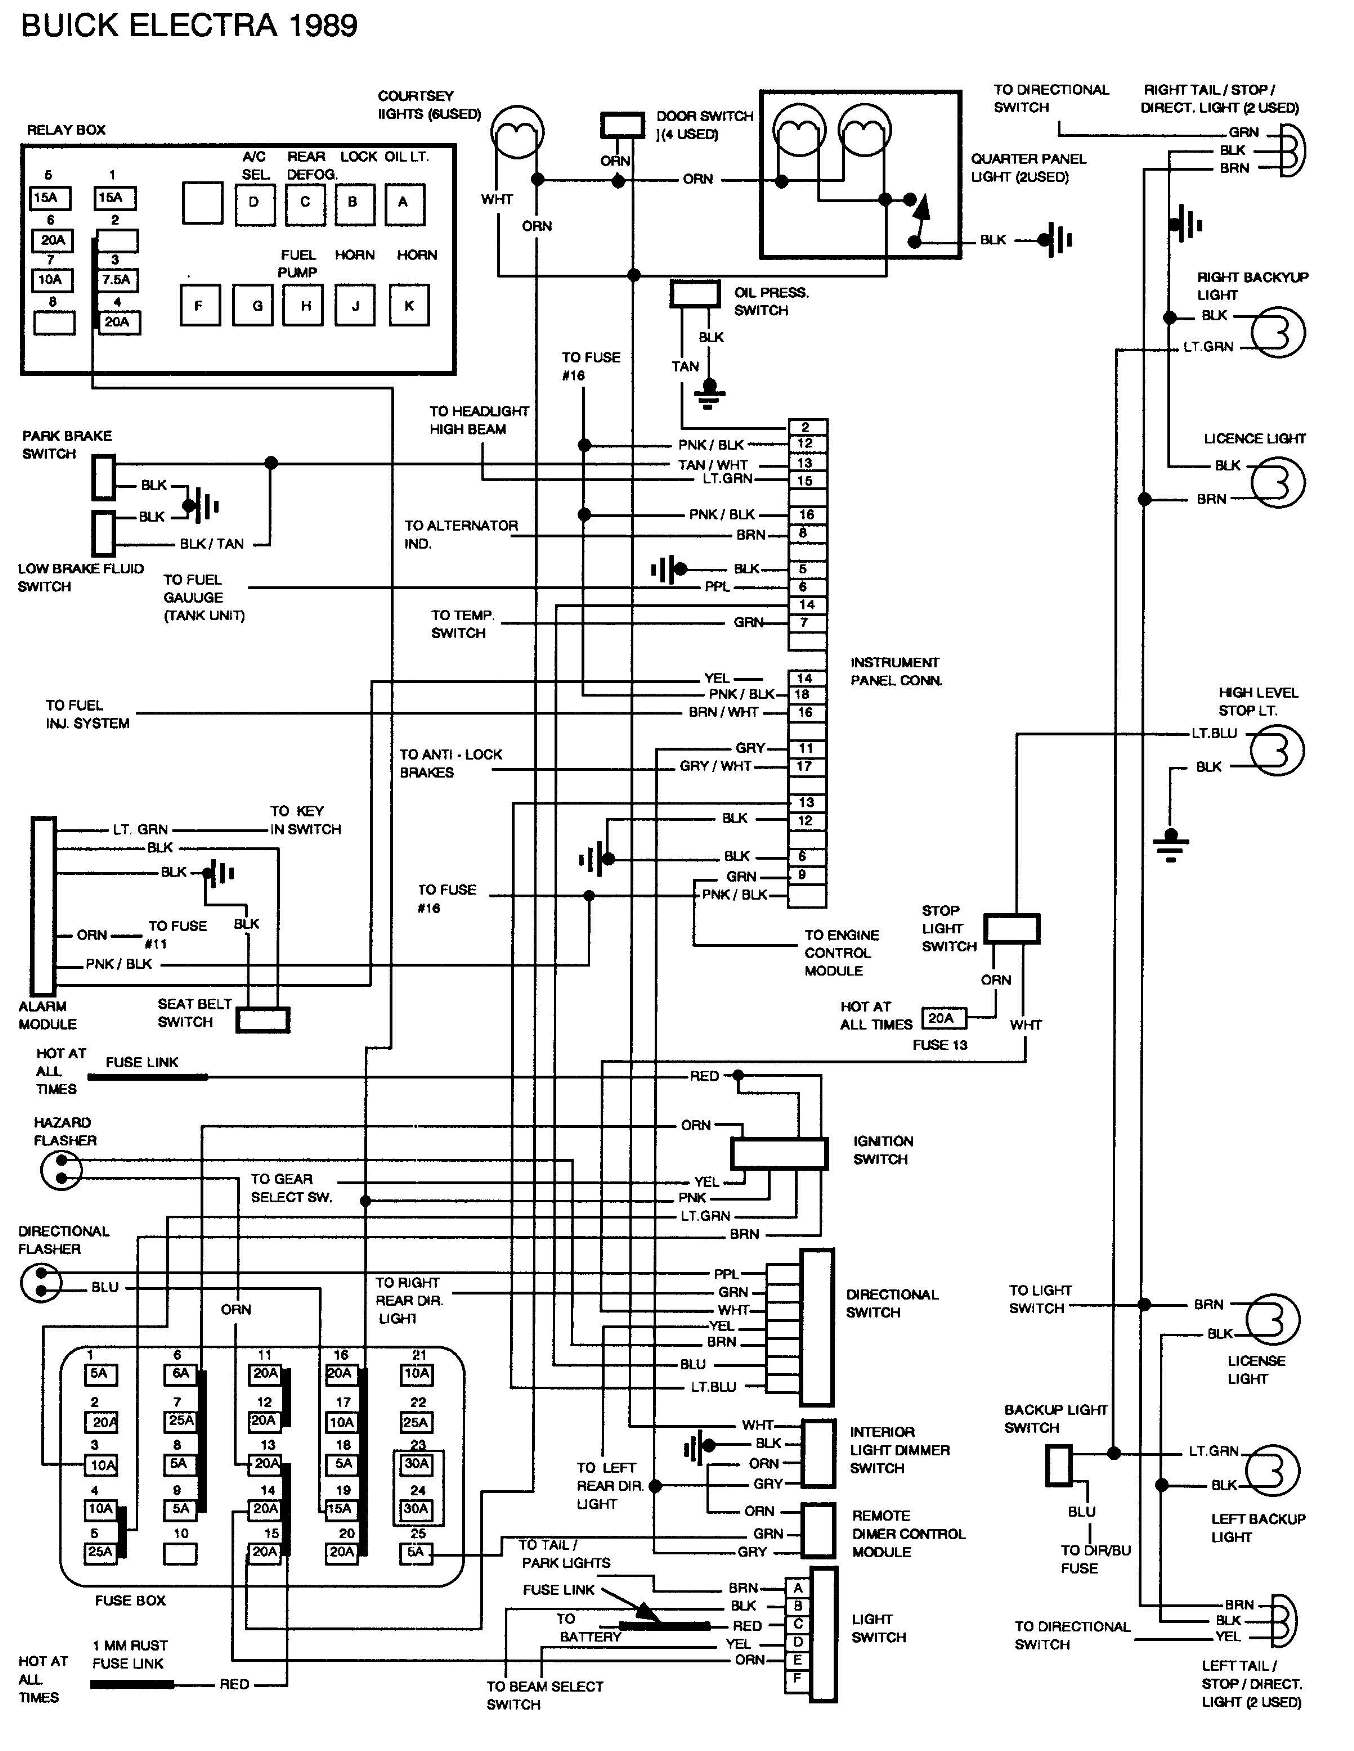 1948 buick wiring diagram 1948 wiring diagrams online buick rendezvous abs wiring diagram buick wiring diagrams